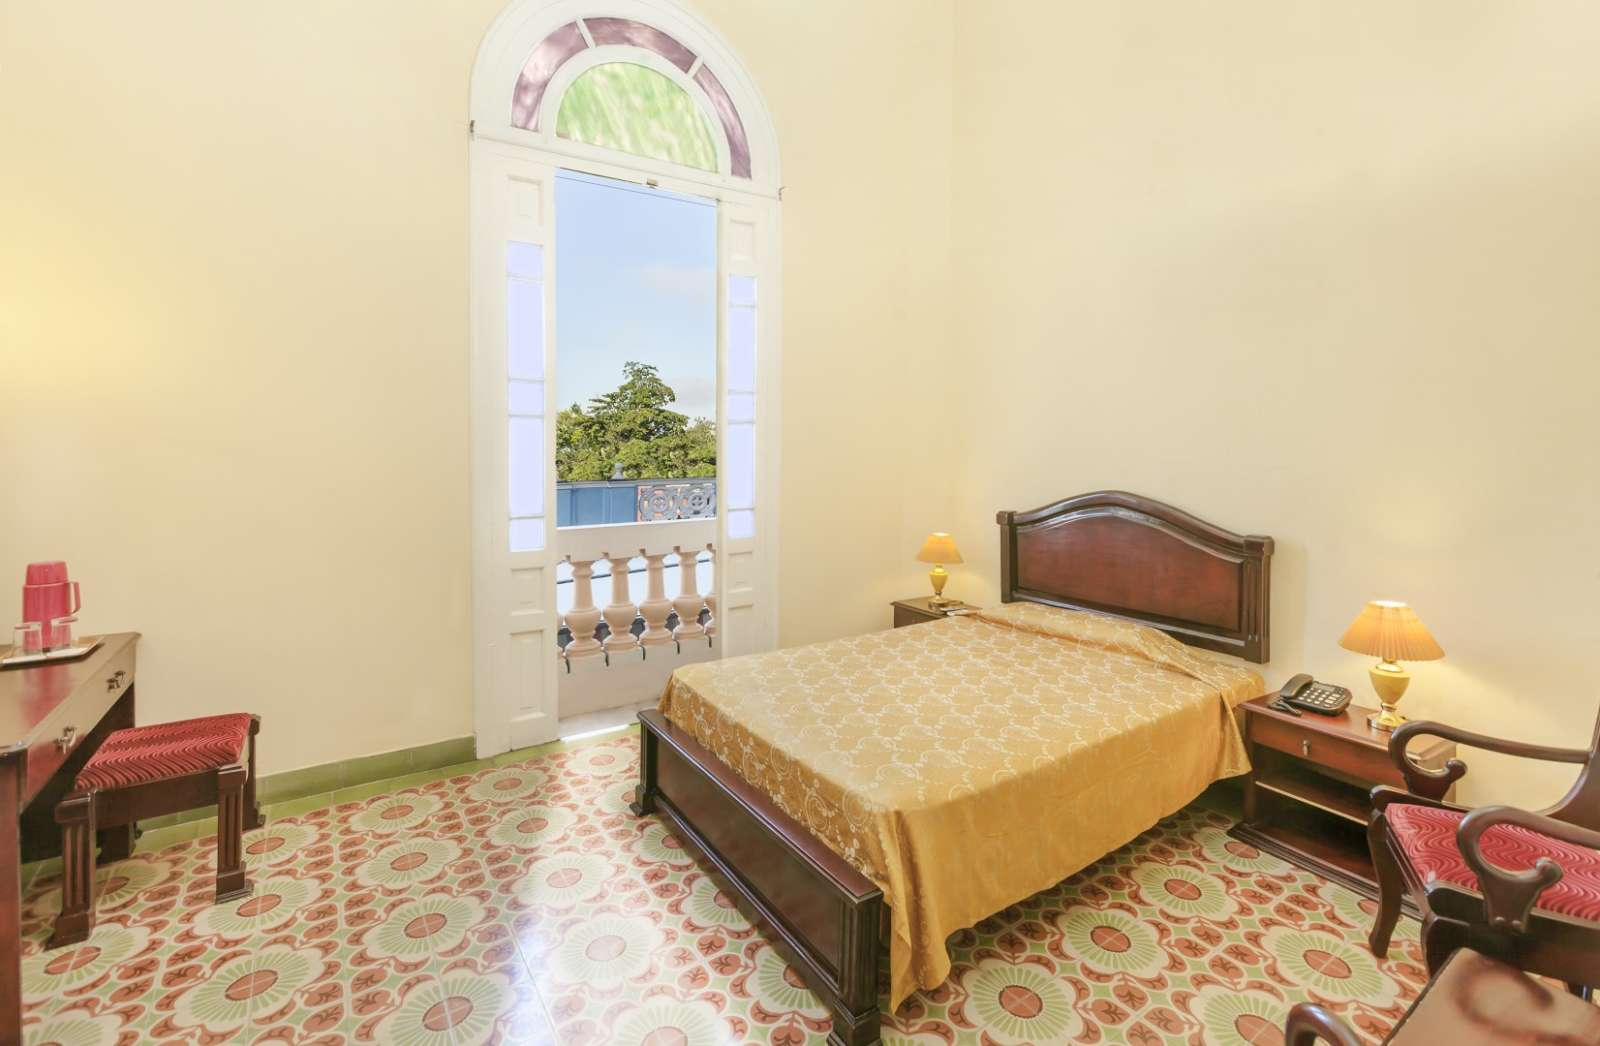 Bedroom with balconcy at Melia Colon in Camaguey